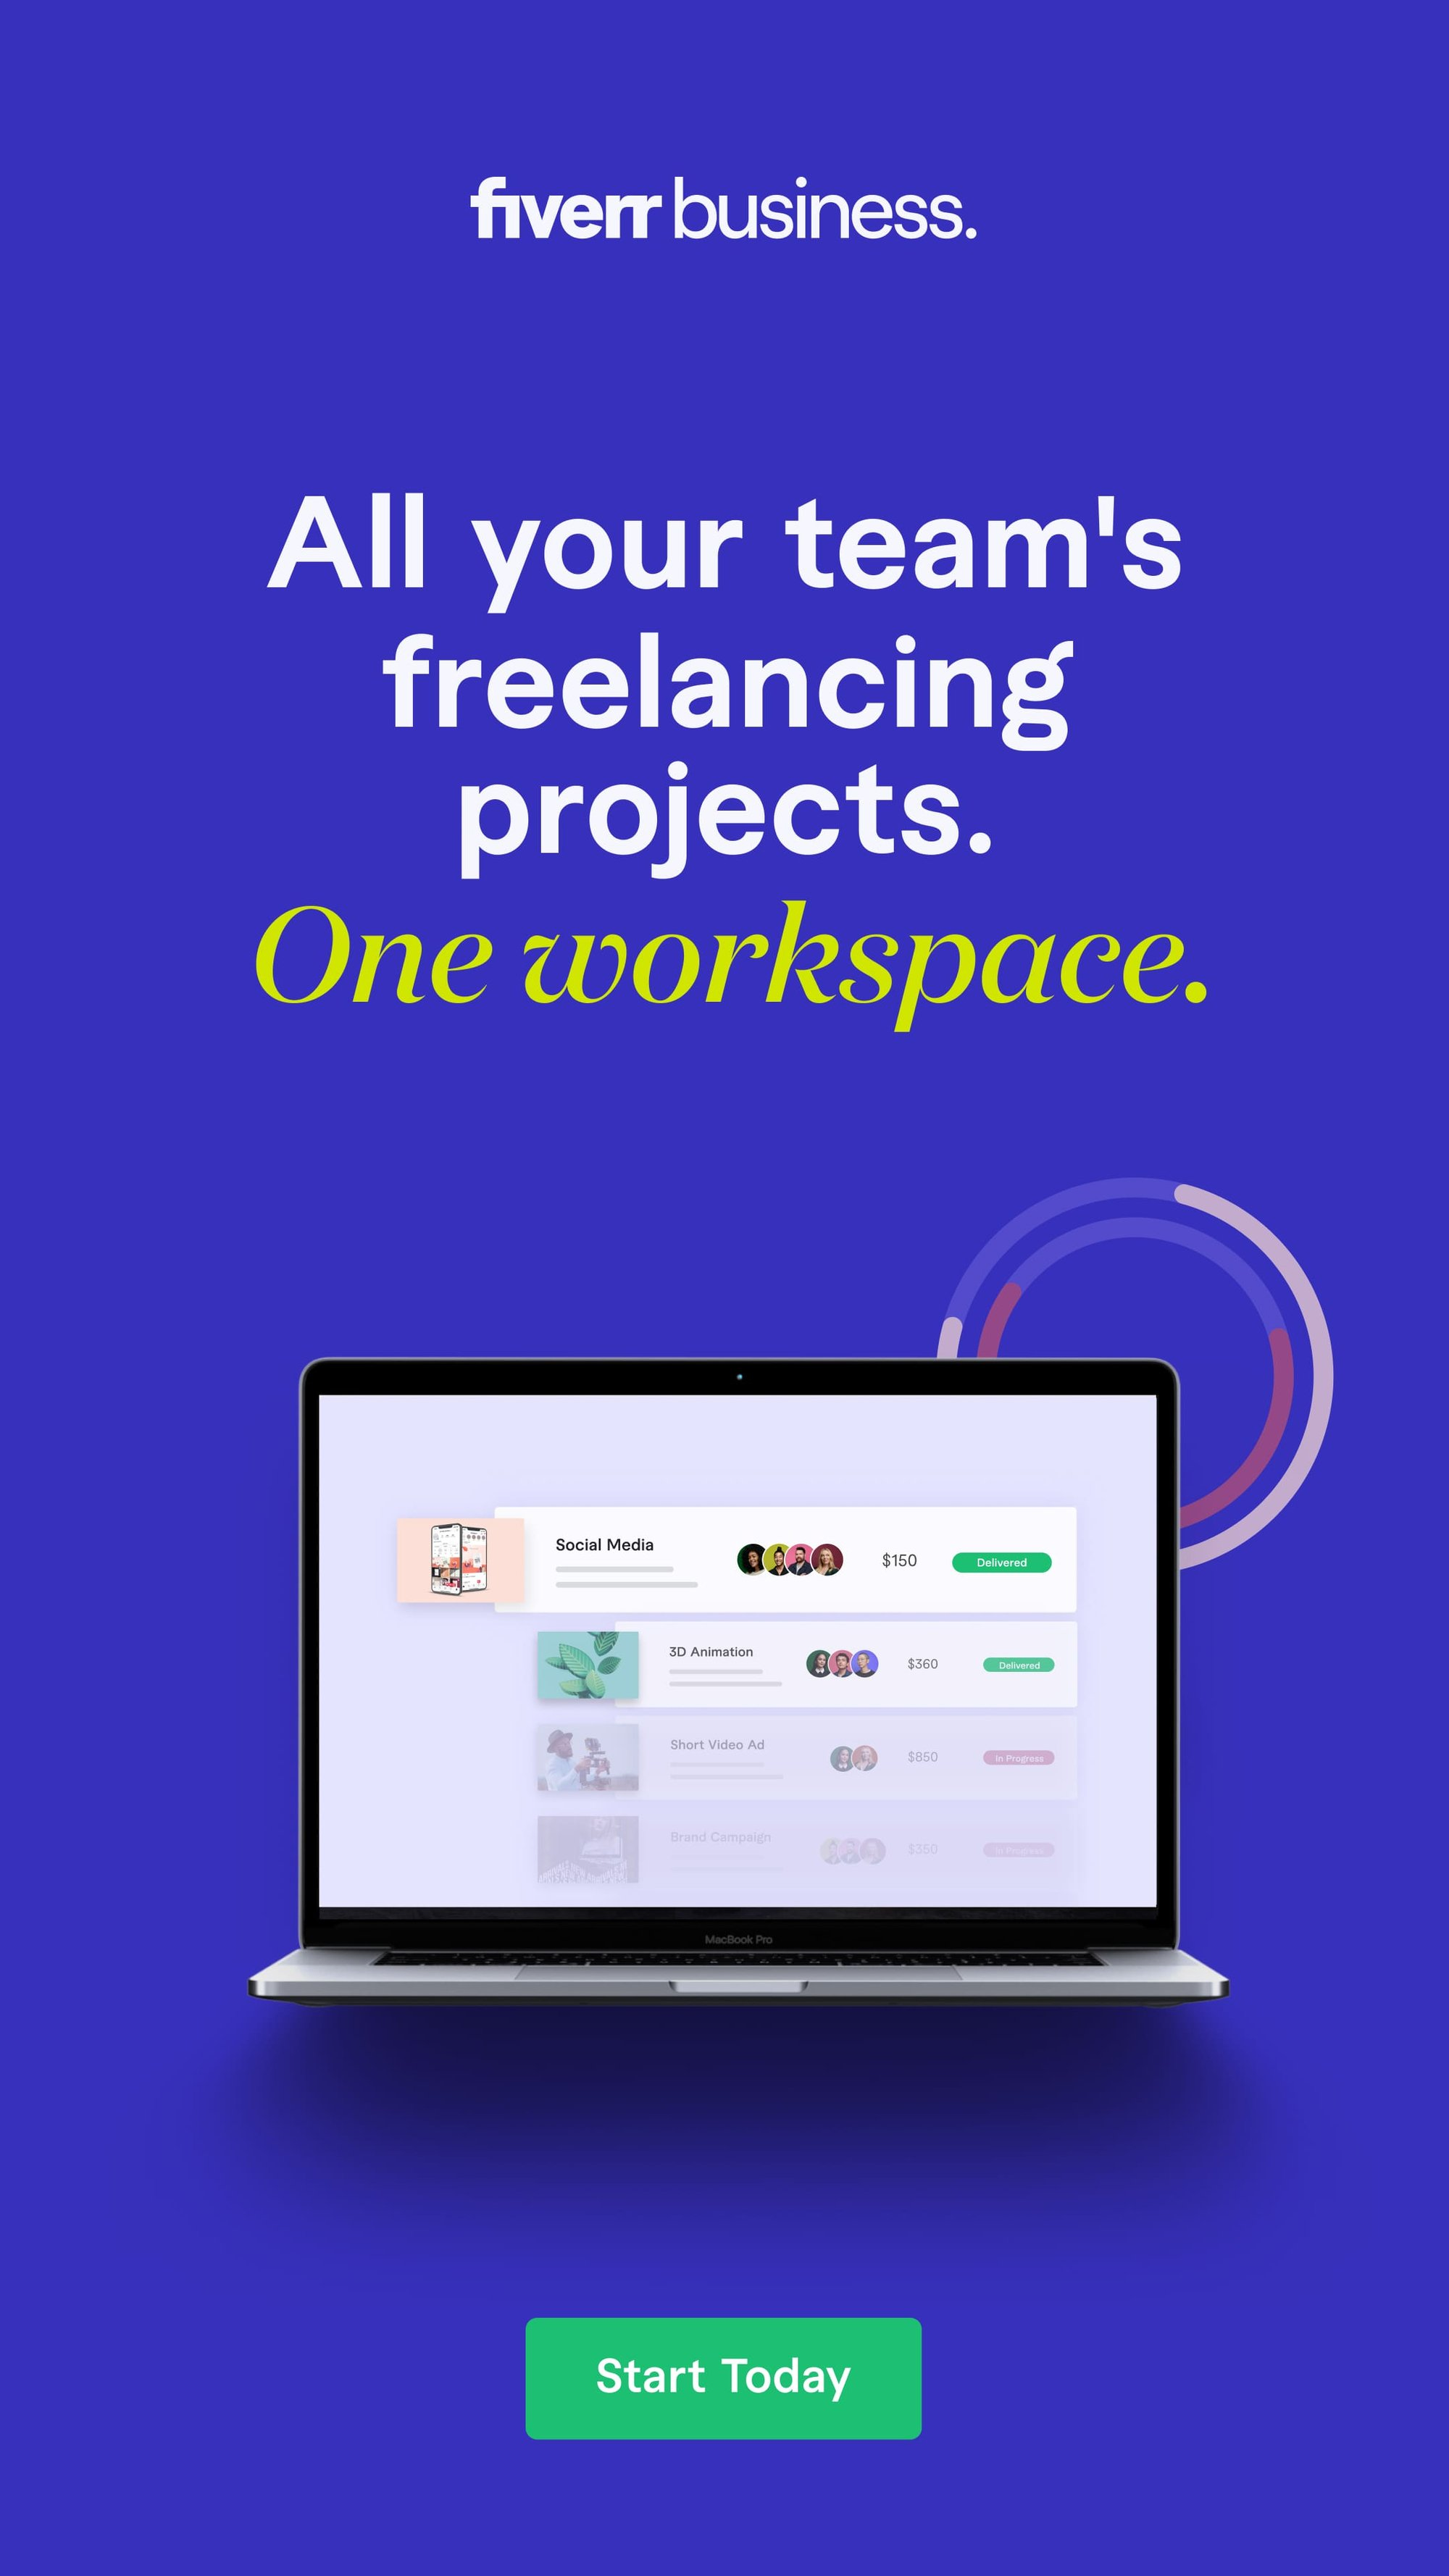 Fiverr Business is a freelance platform designed for corporate teams and departments to collaborate each other while managing Freelancing Project.